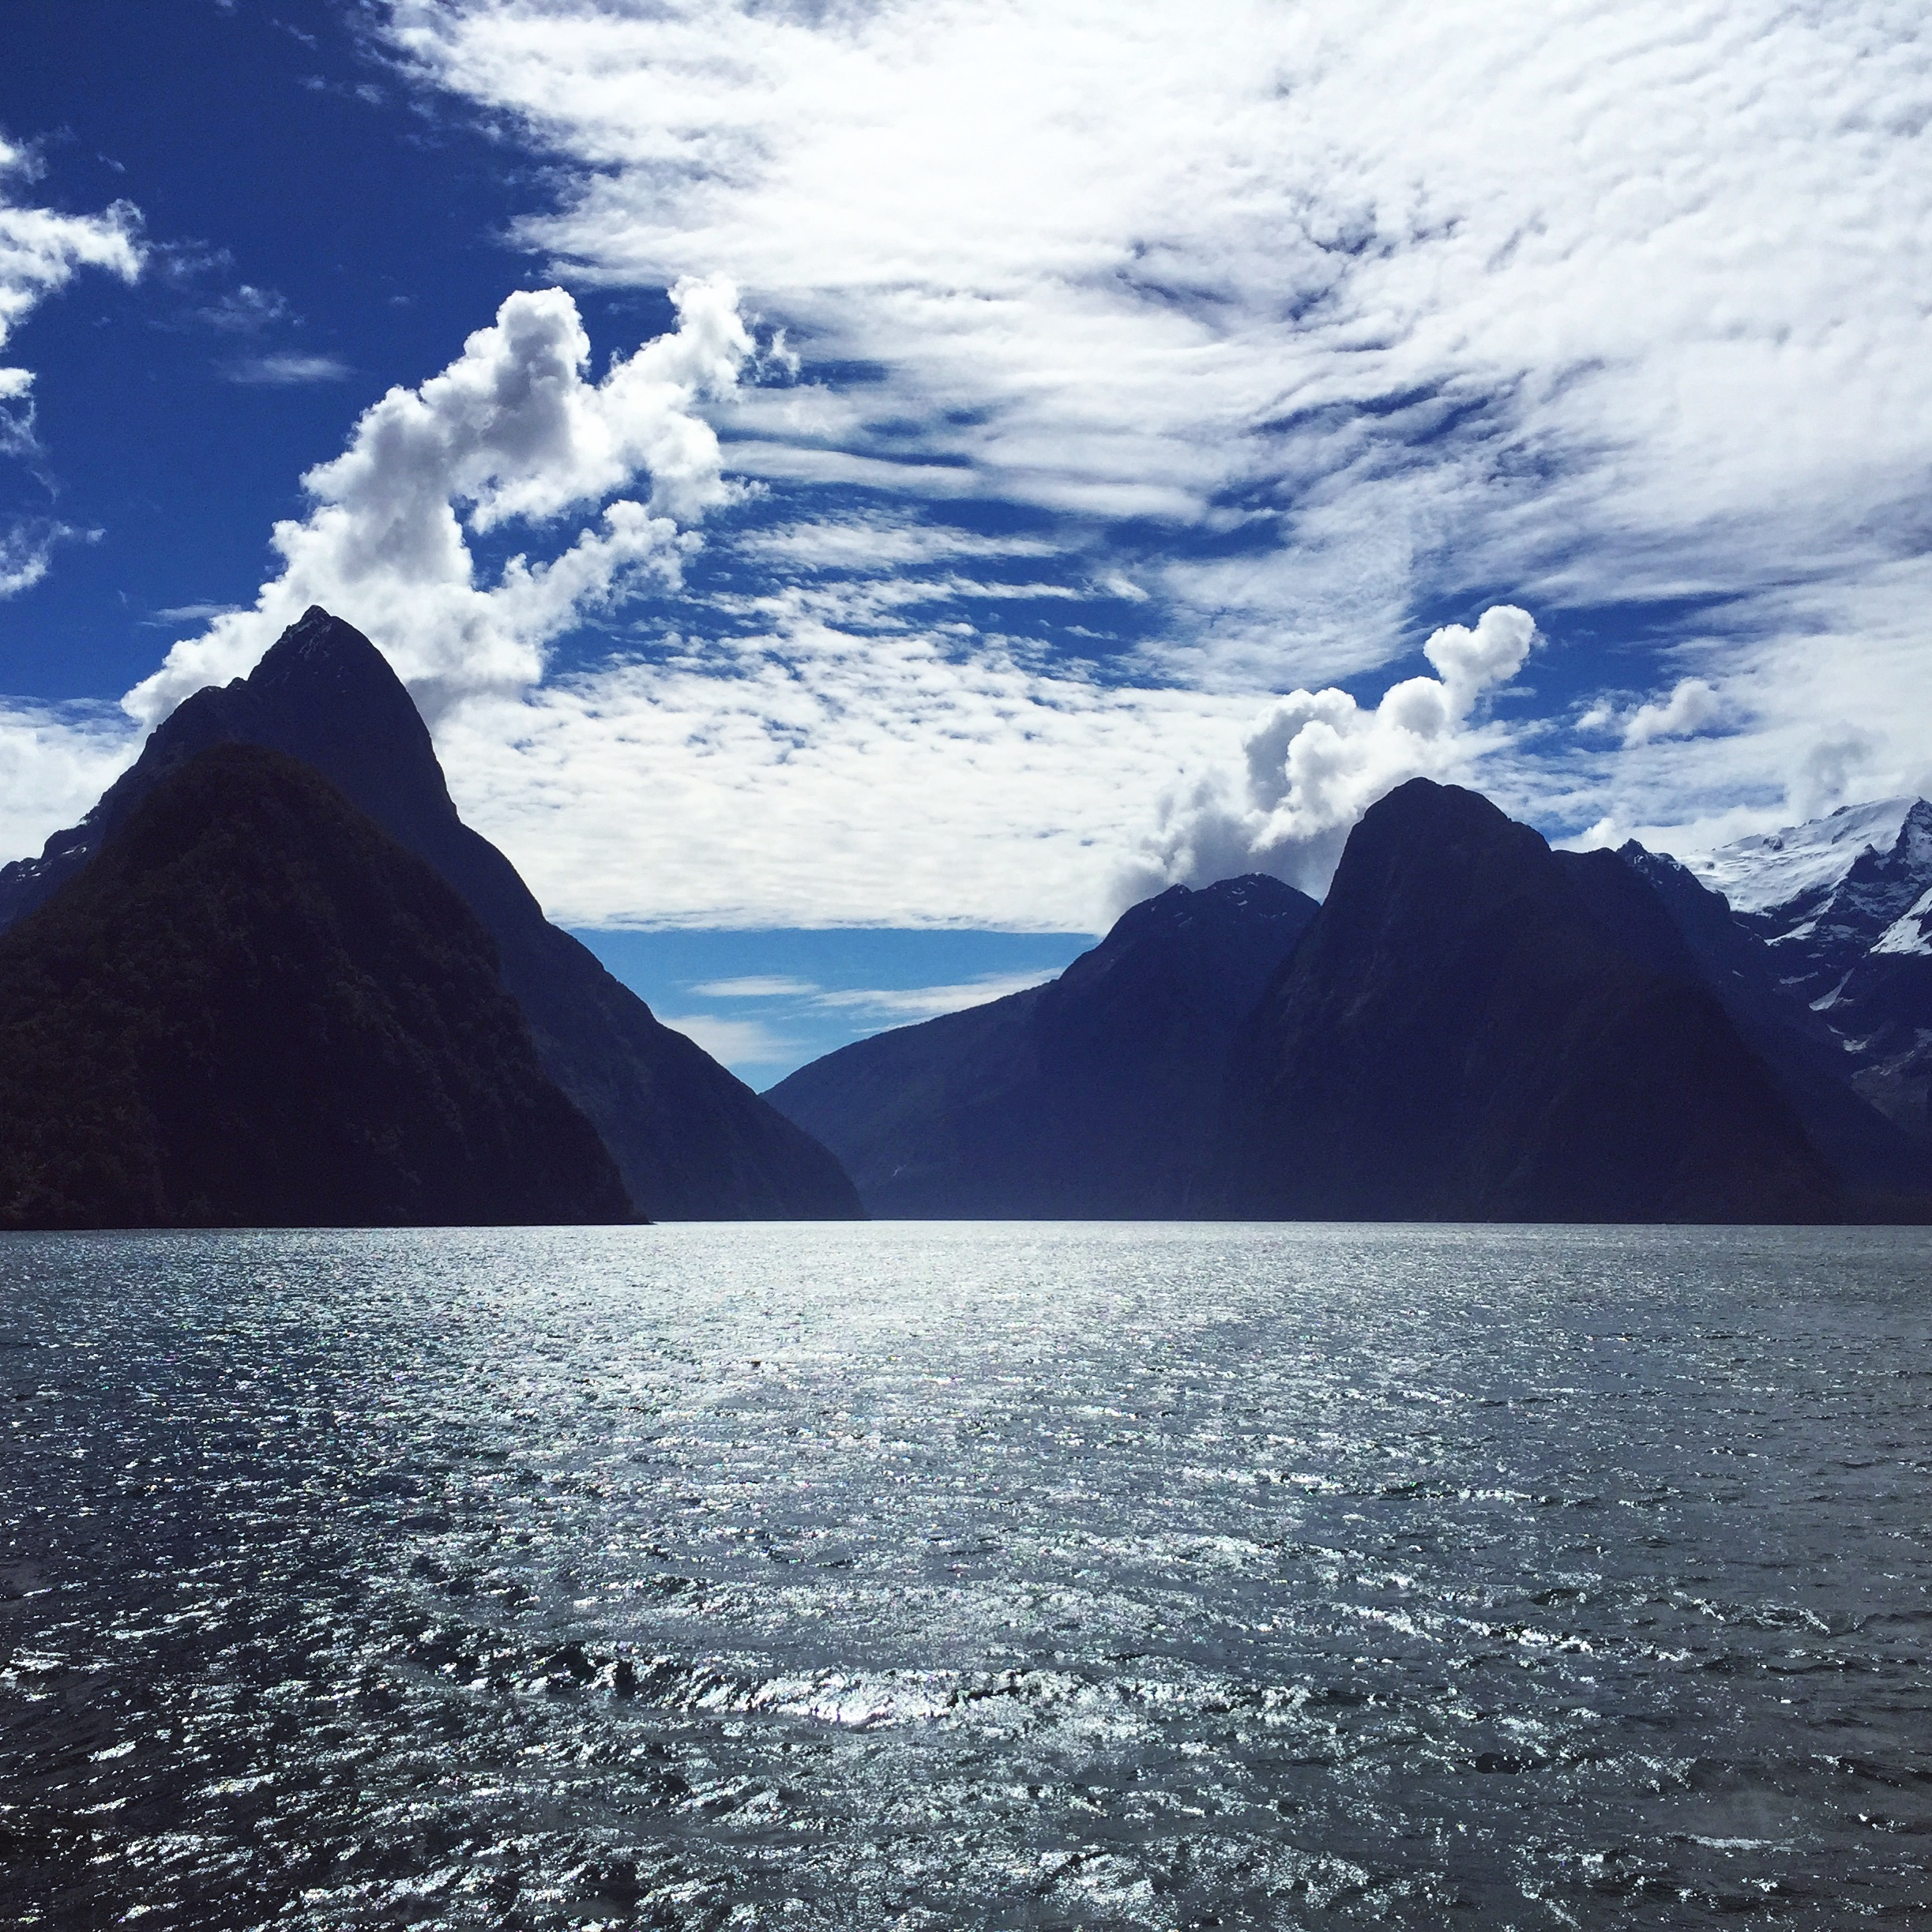 Sunny day at Milford Sound